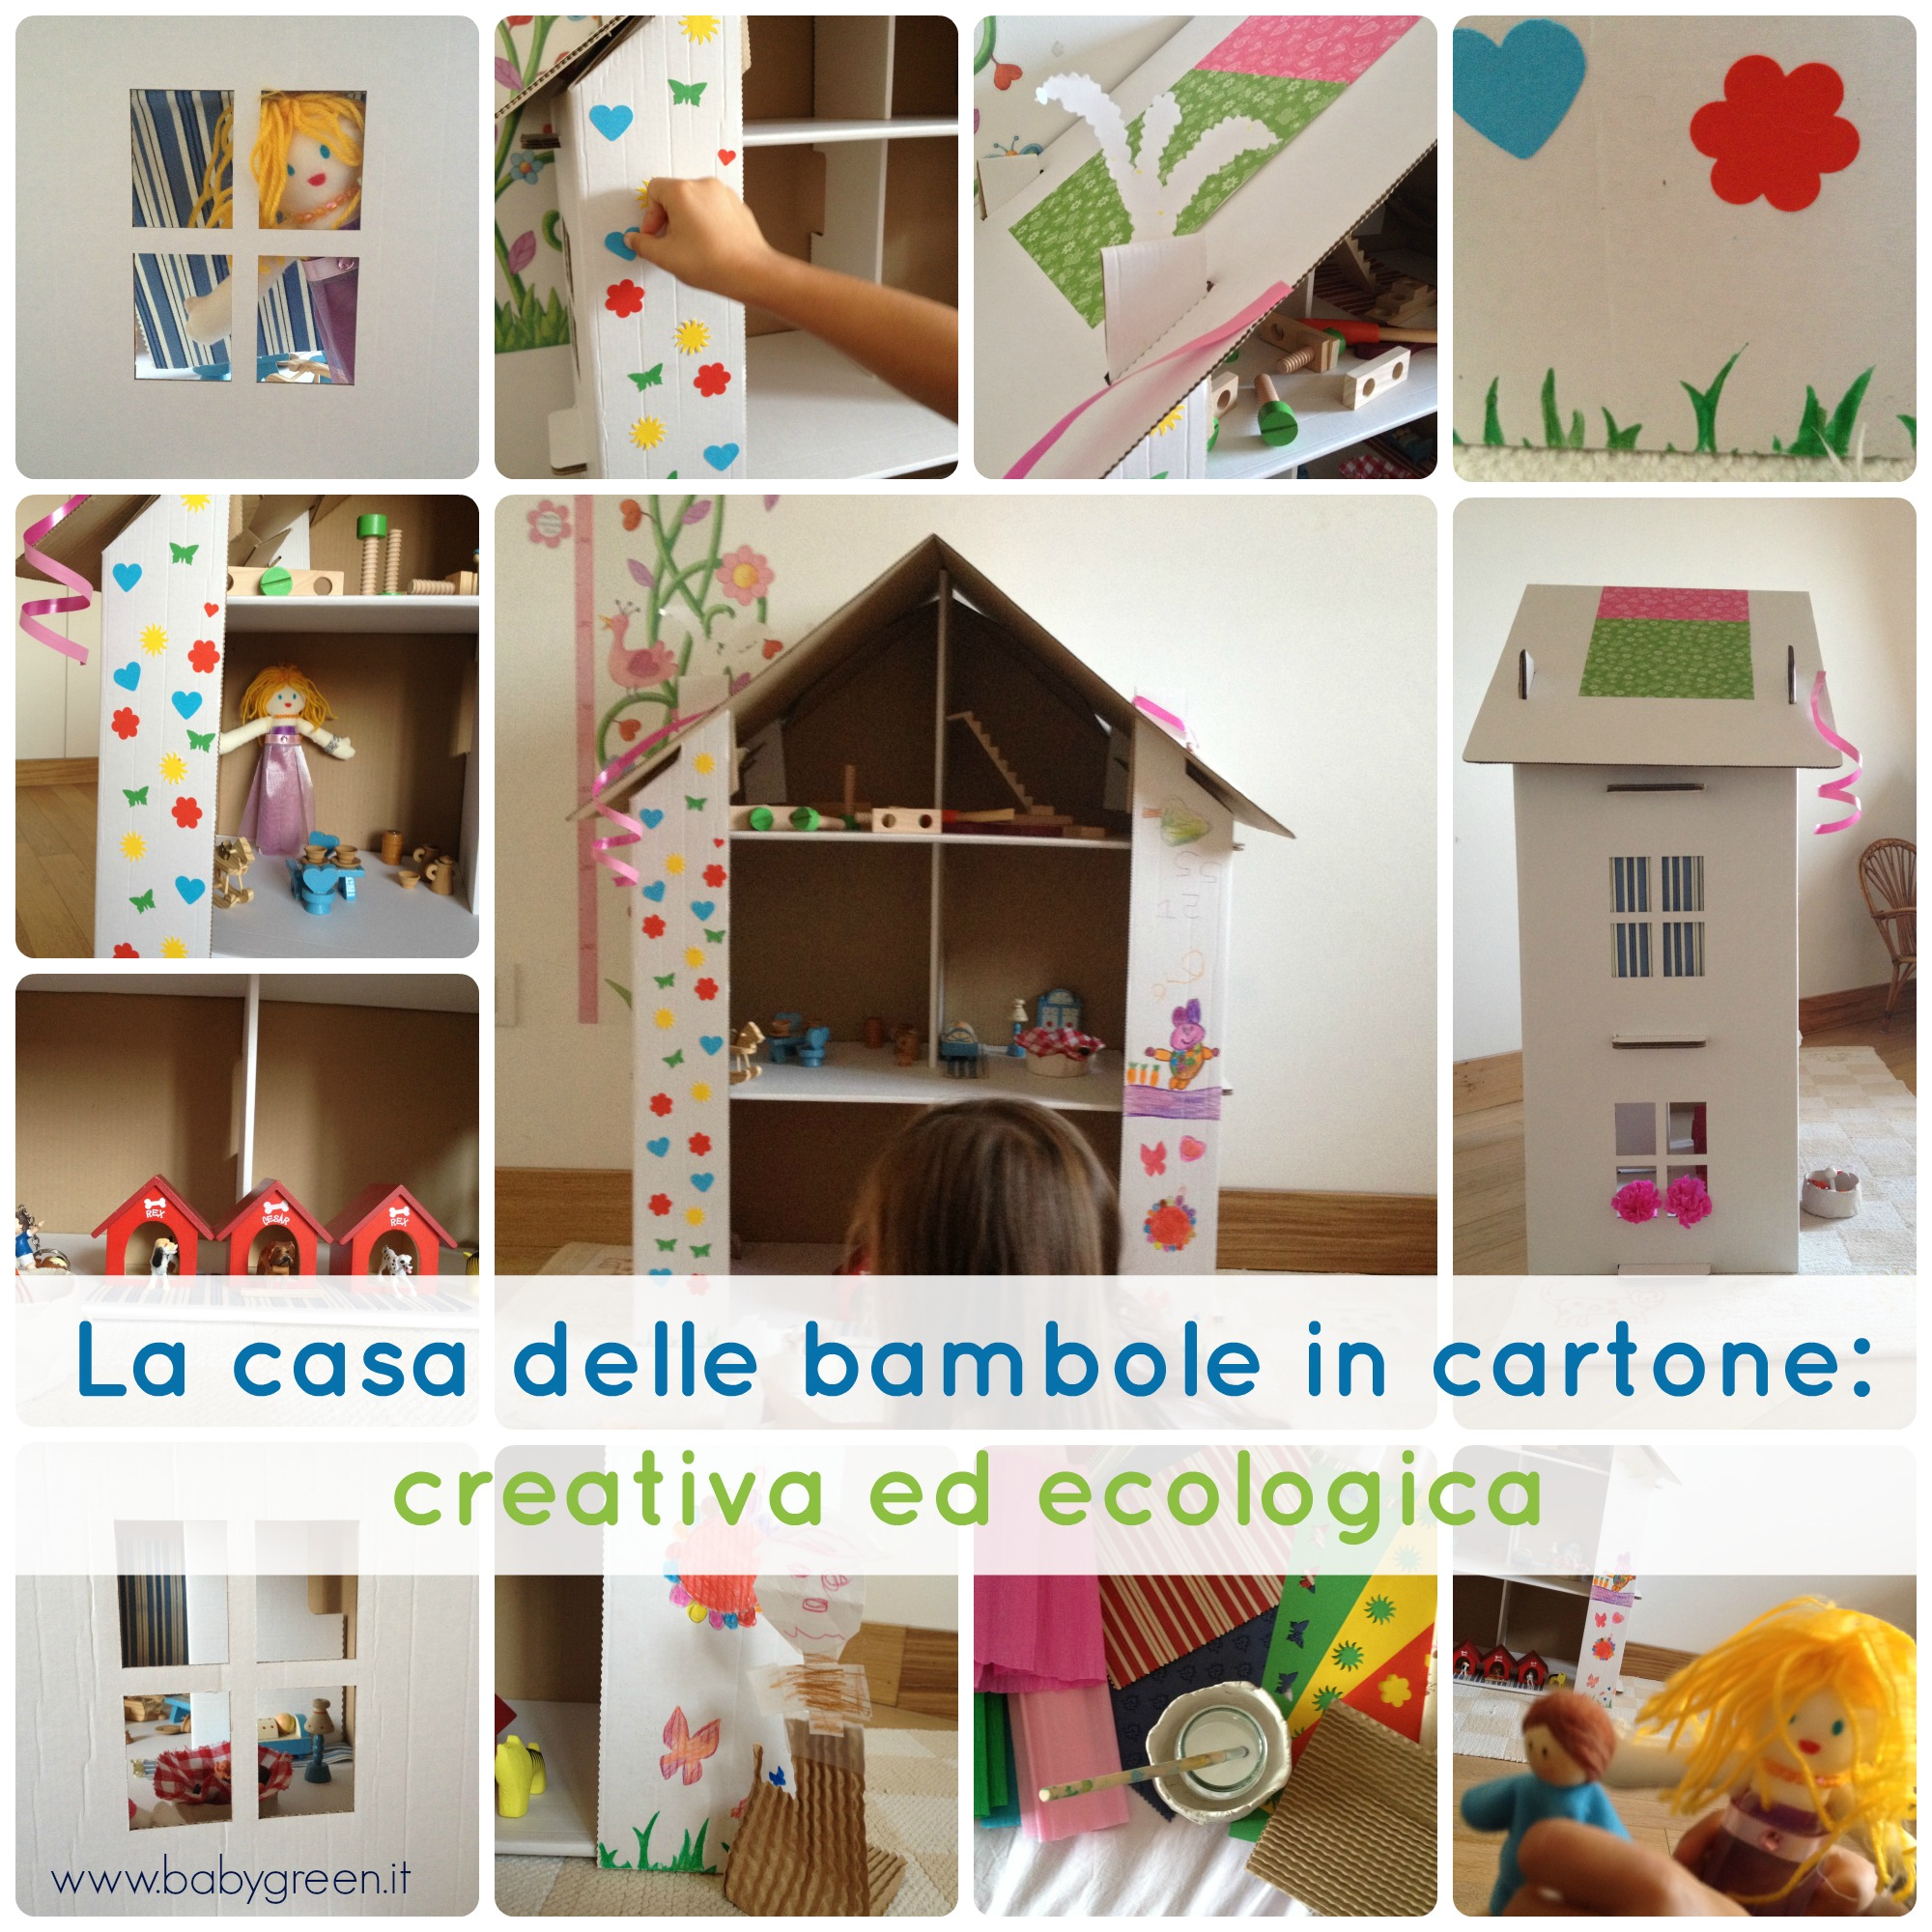 Decorare scatole di cartone per bambini cr16 regardsdefemmes for Casa di barbie youtube